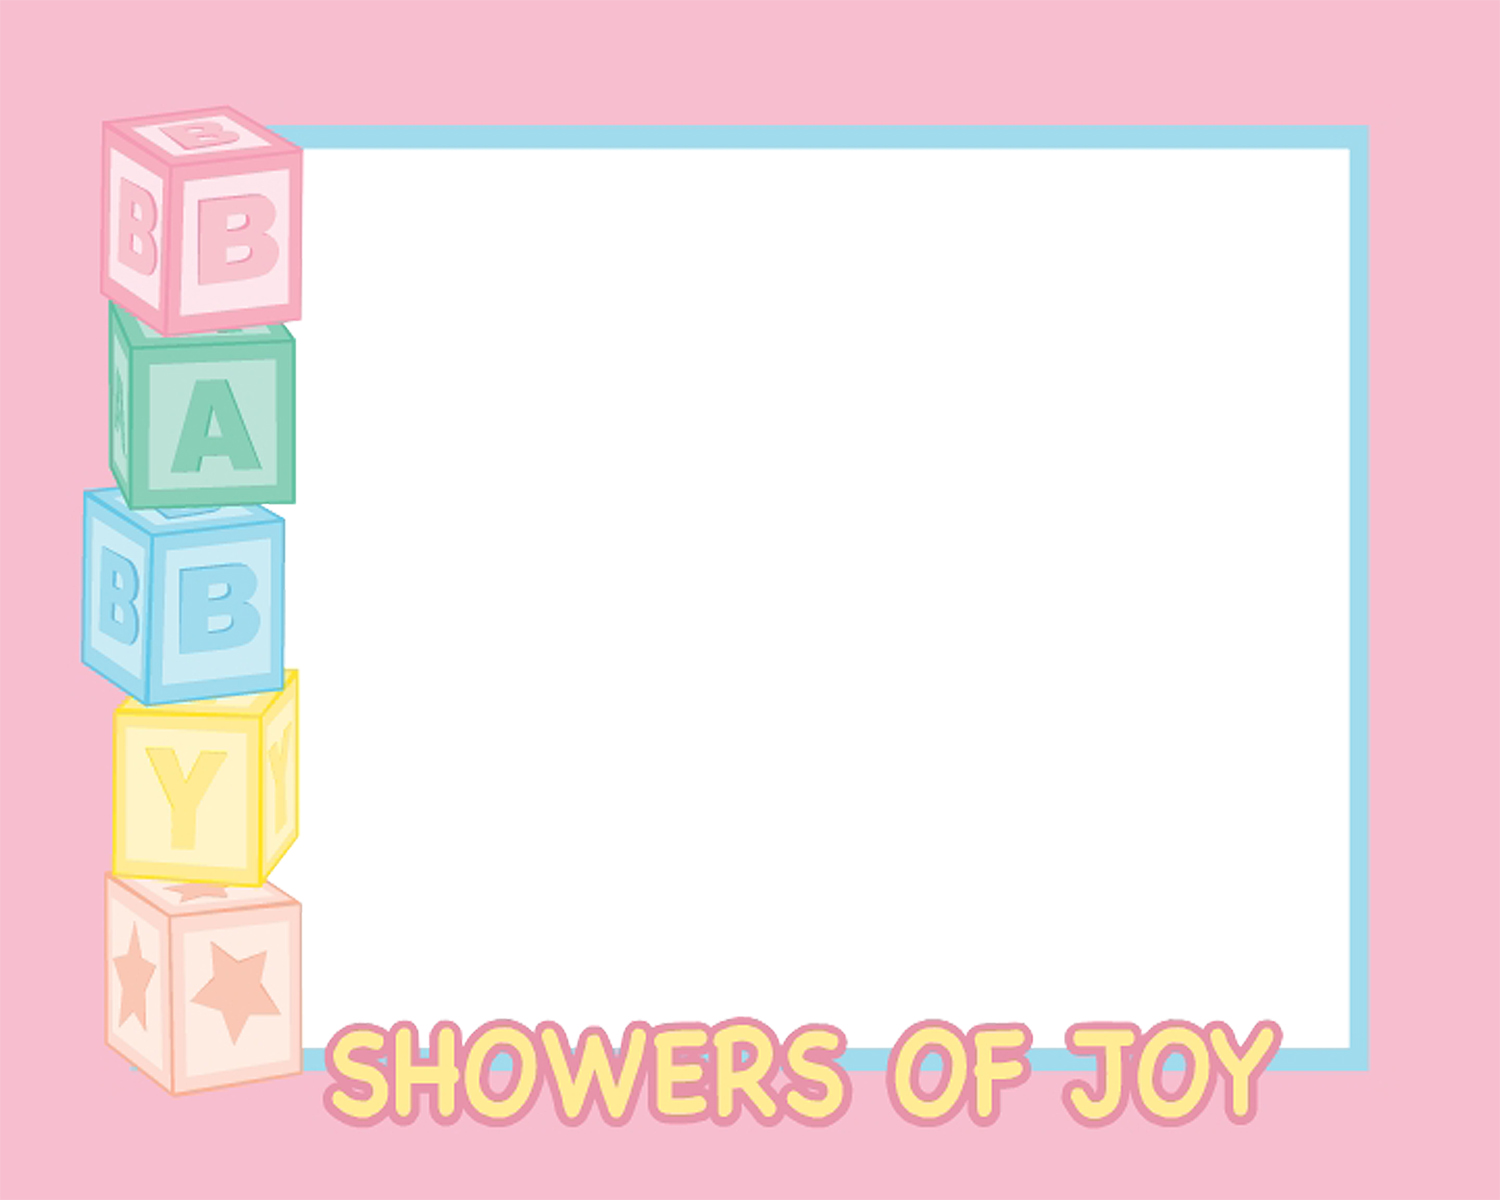 ... Shower · 13 Baby Frame Psd Images Baby S Photo Psd Frame Templates ...